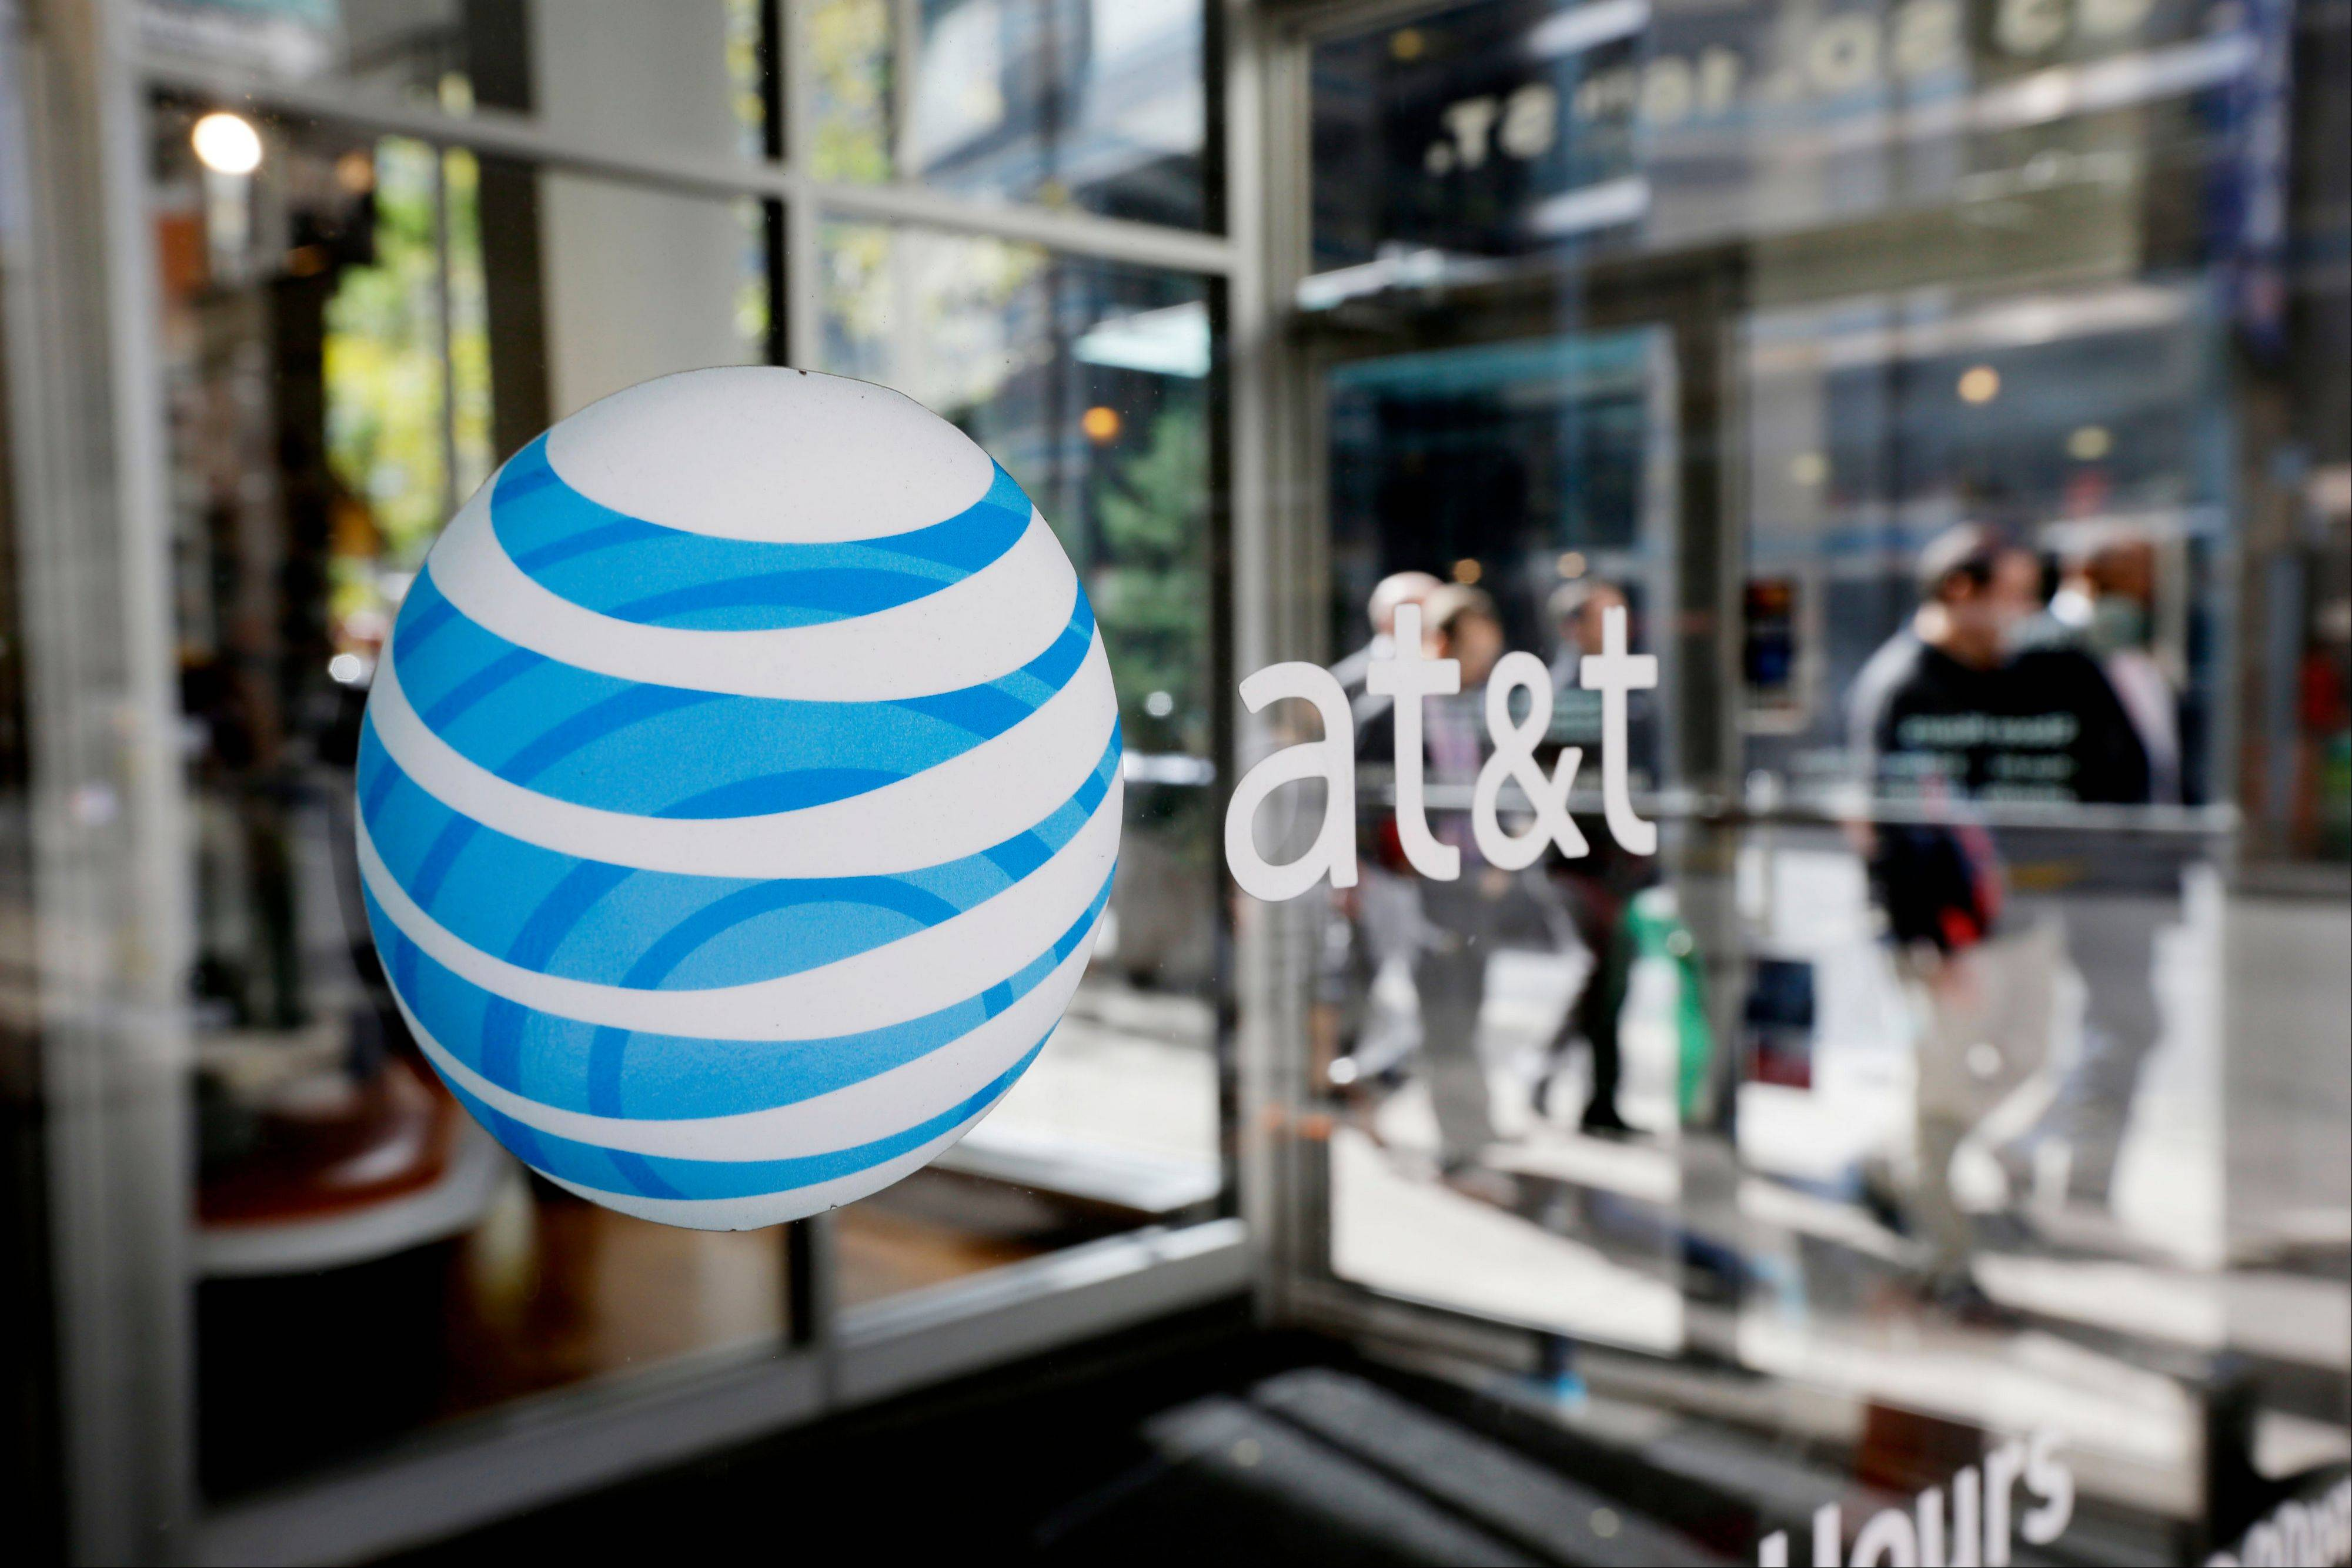 Associated PressThe flow of customers into AT&T's wireless stores slowed further in the latest quarter, putting the company far behind rival Verizon Wireless. AT&T Inc. on Wednesday, Oct. 24, 2012, said it added a net 151,000 new customers on contract-based plans from July through September, the lowest number for that period since at least 2003.